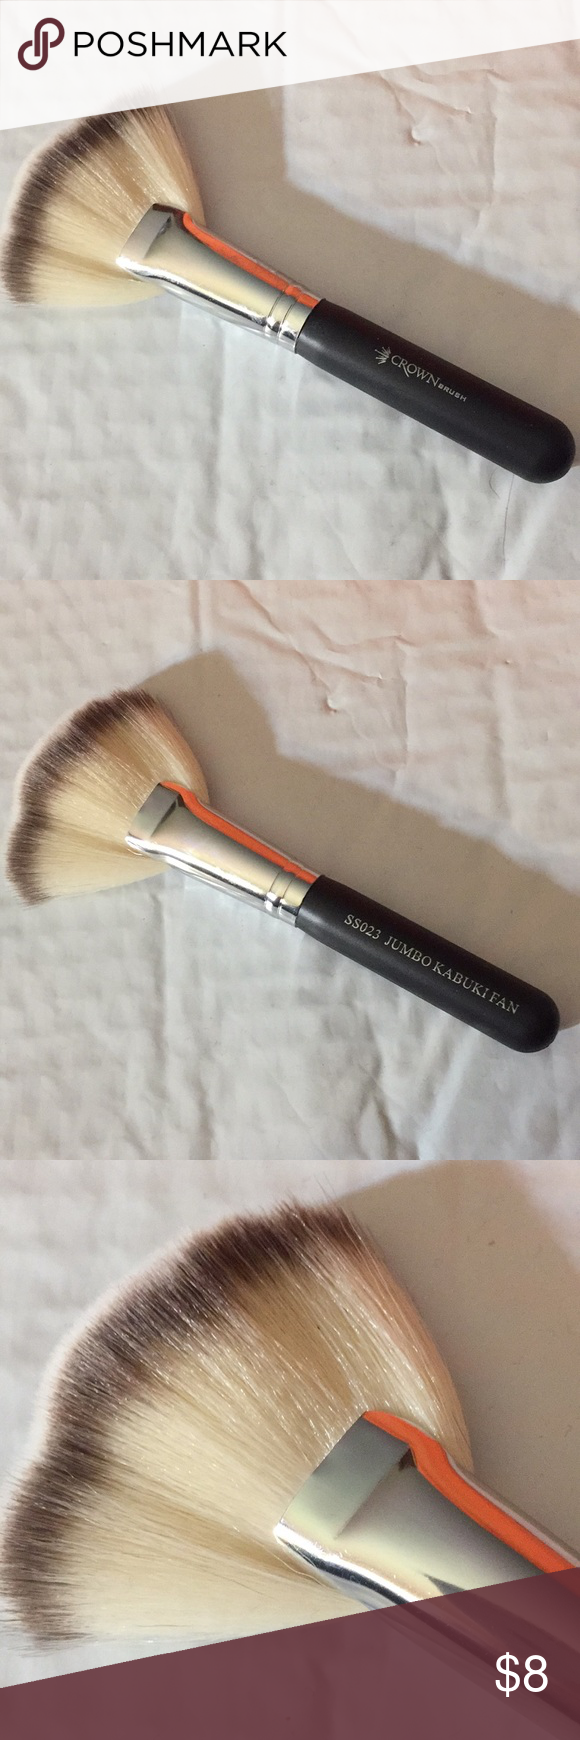 Crown makeup brush jumbo kabuki fan nwop Crown makeup